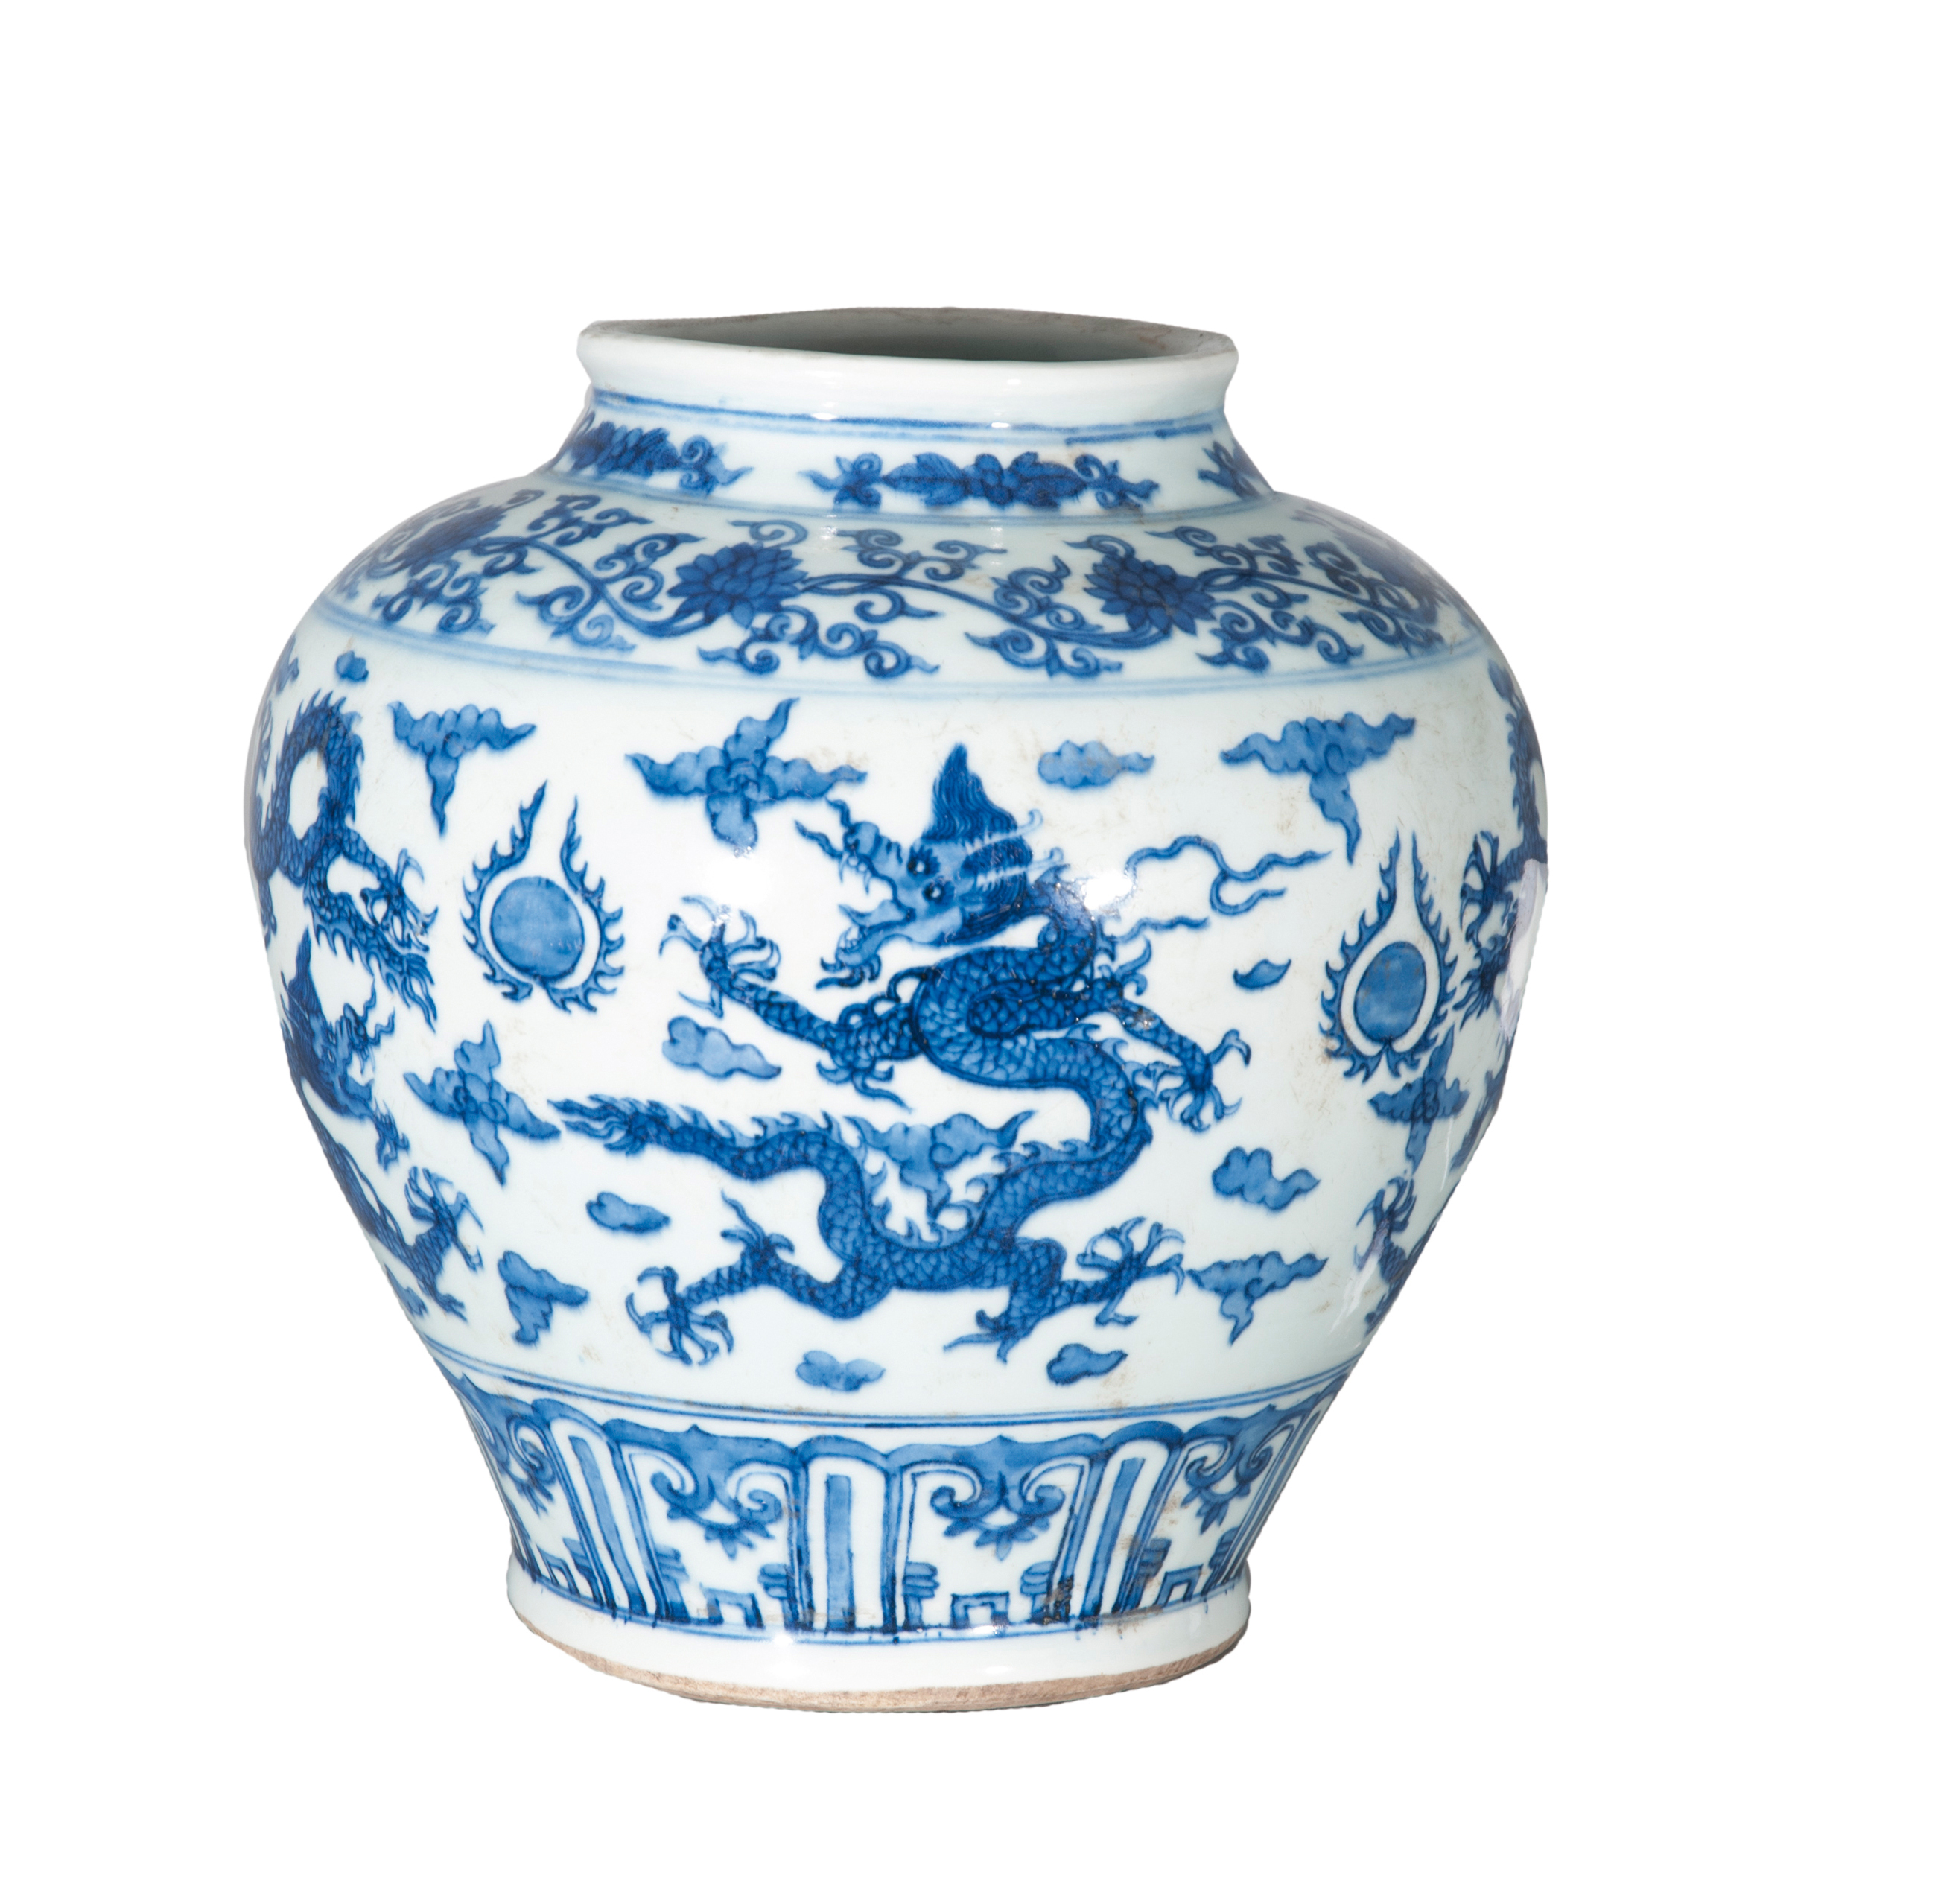 A Ming-style jar with dragons